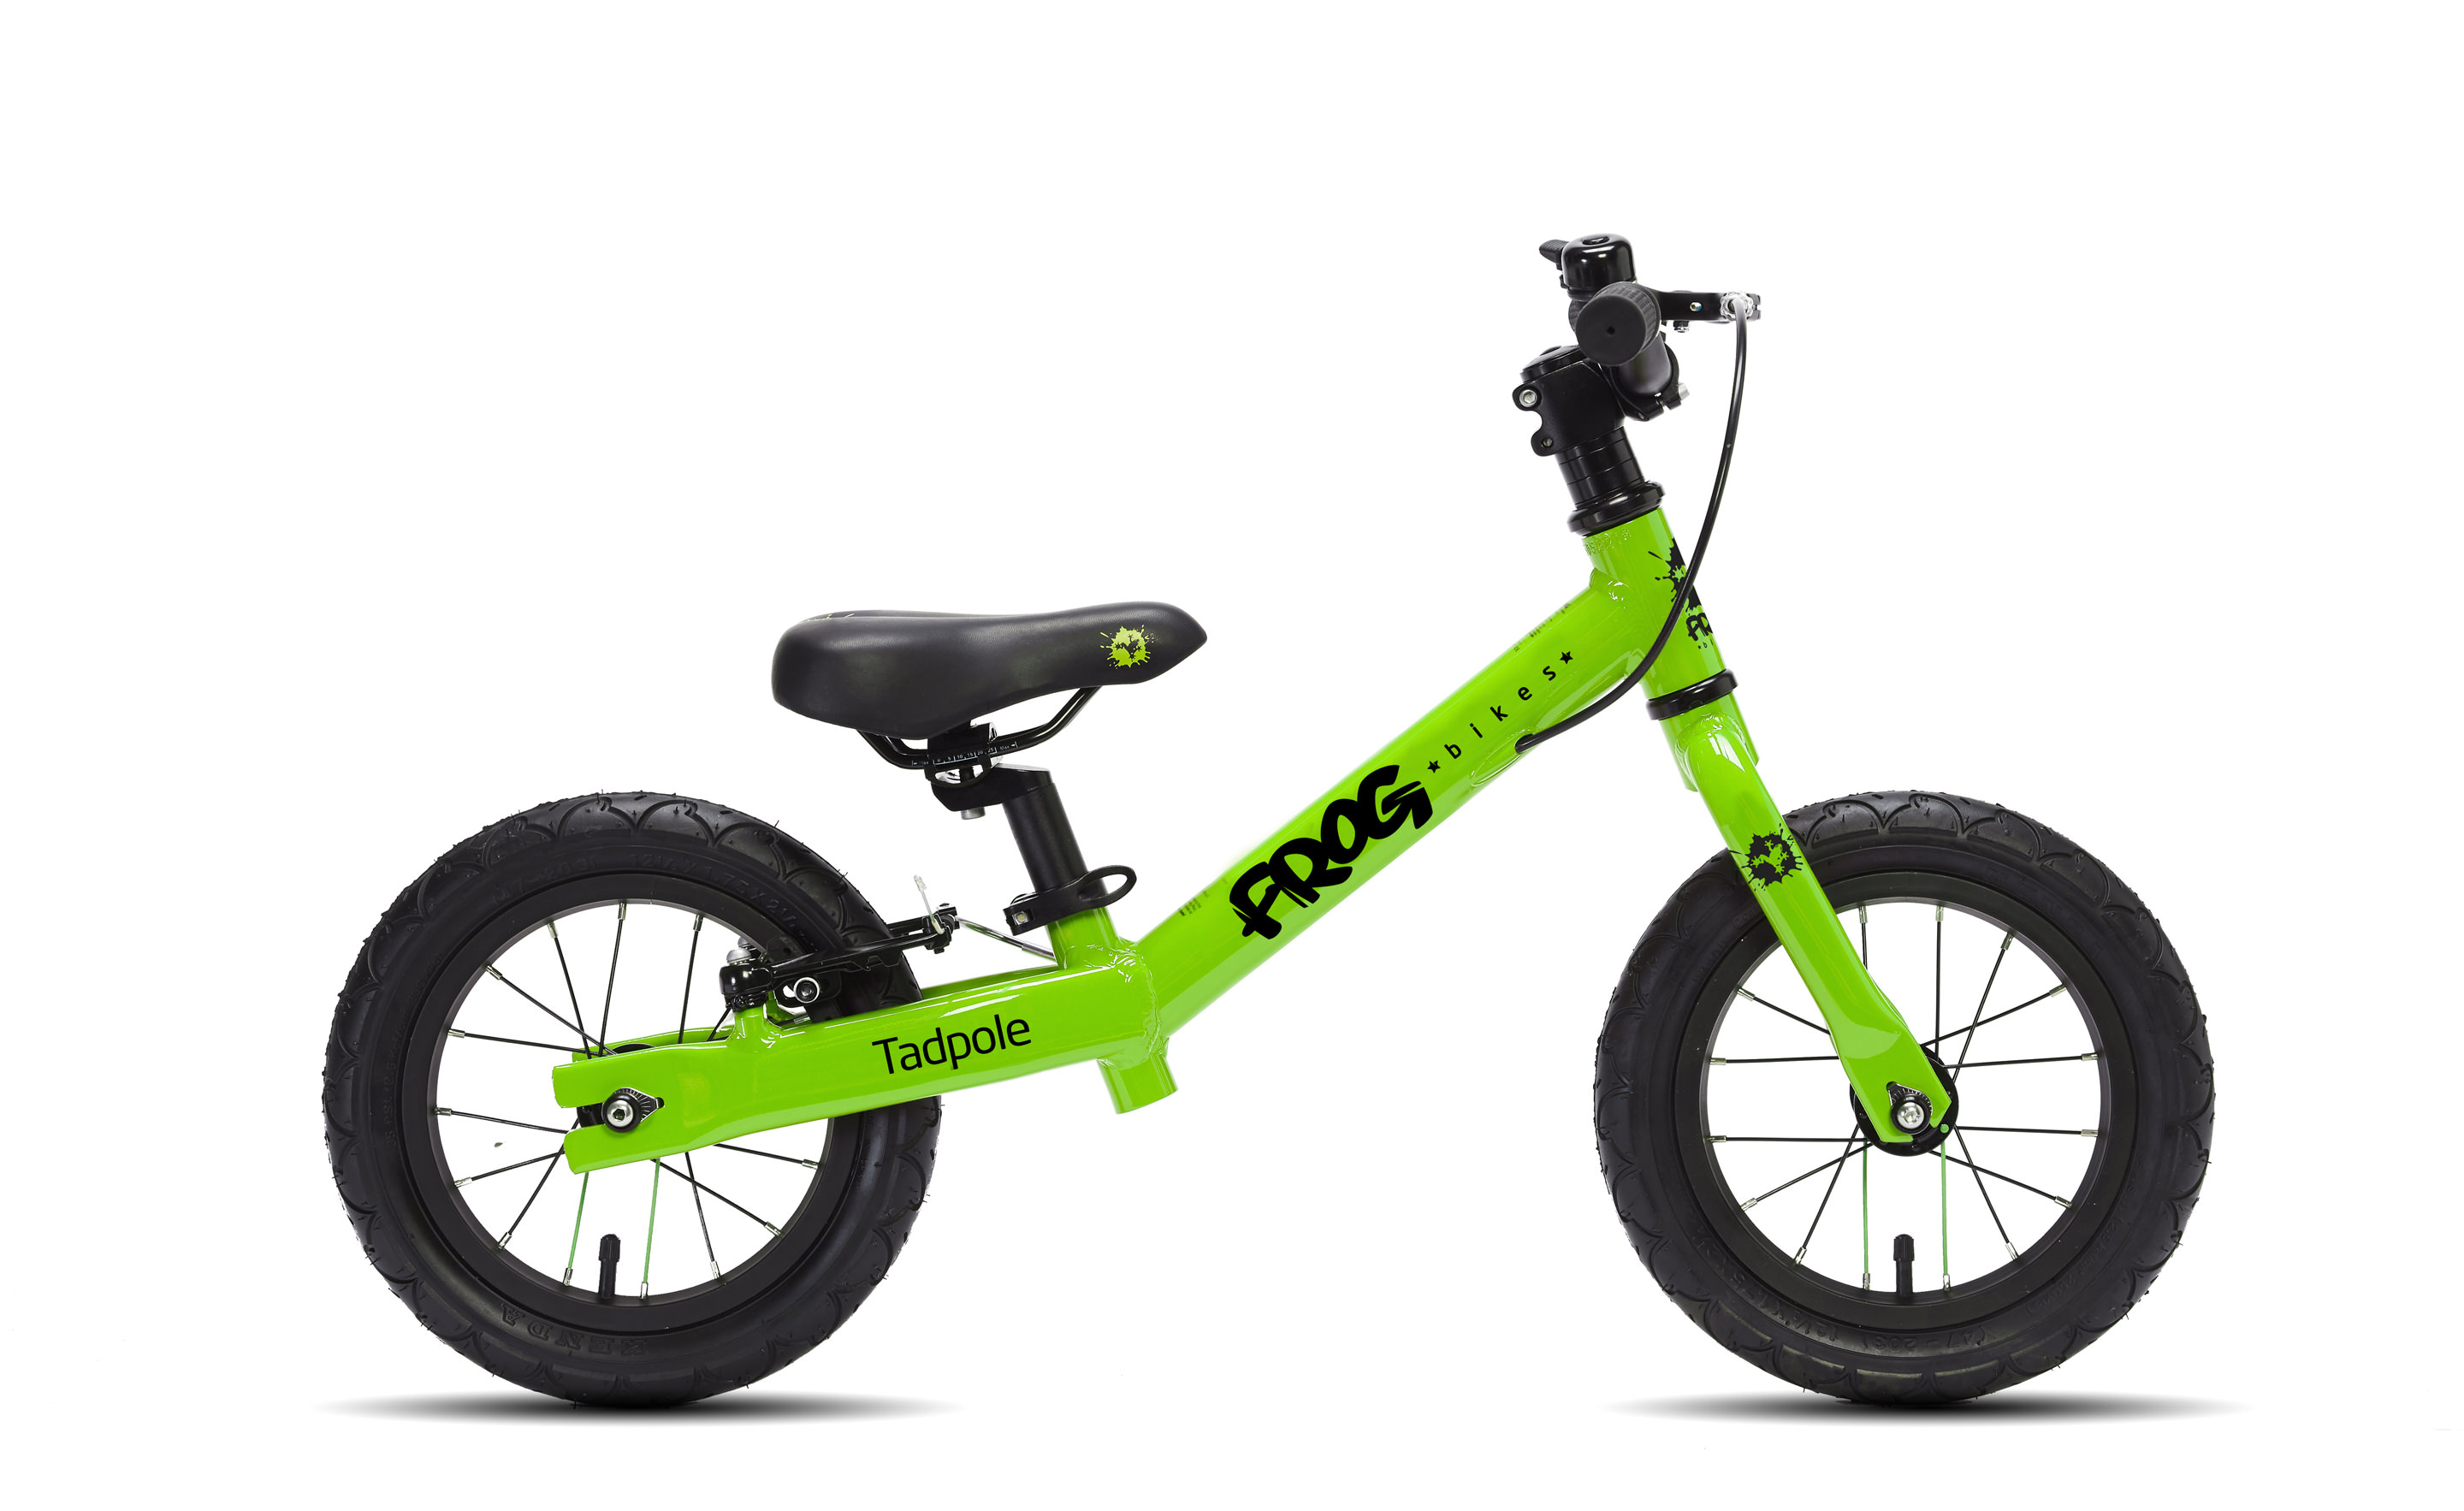 Tadpole Vert | Bouticycle